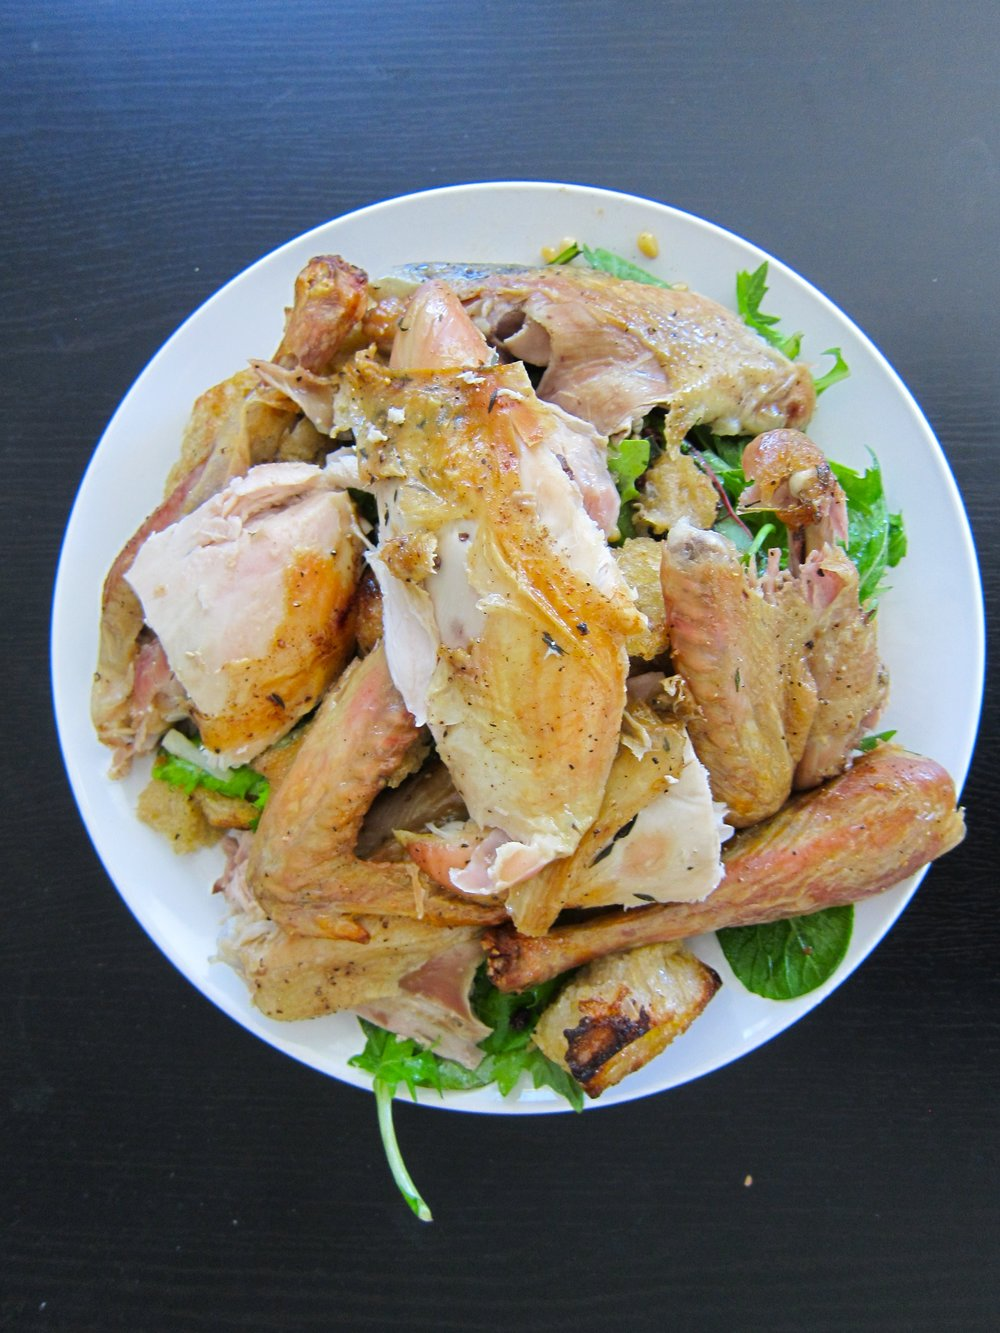 Zuni Cafe Roast Chicken.jpg